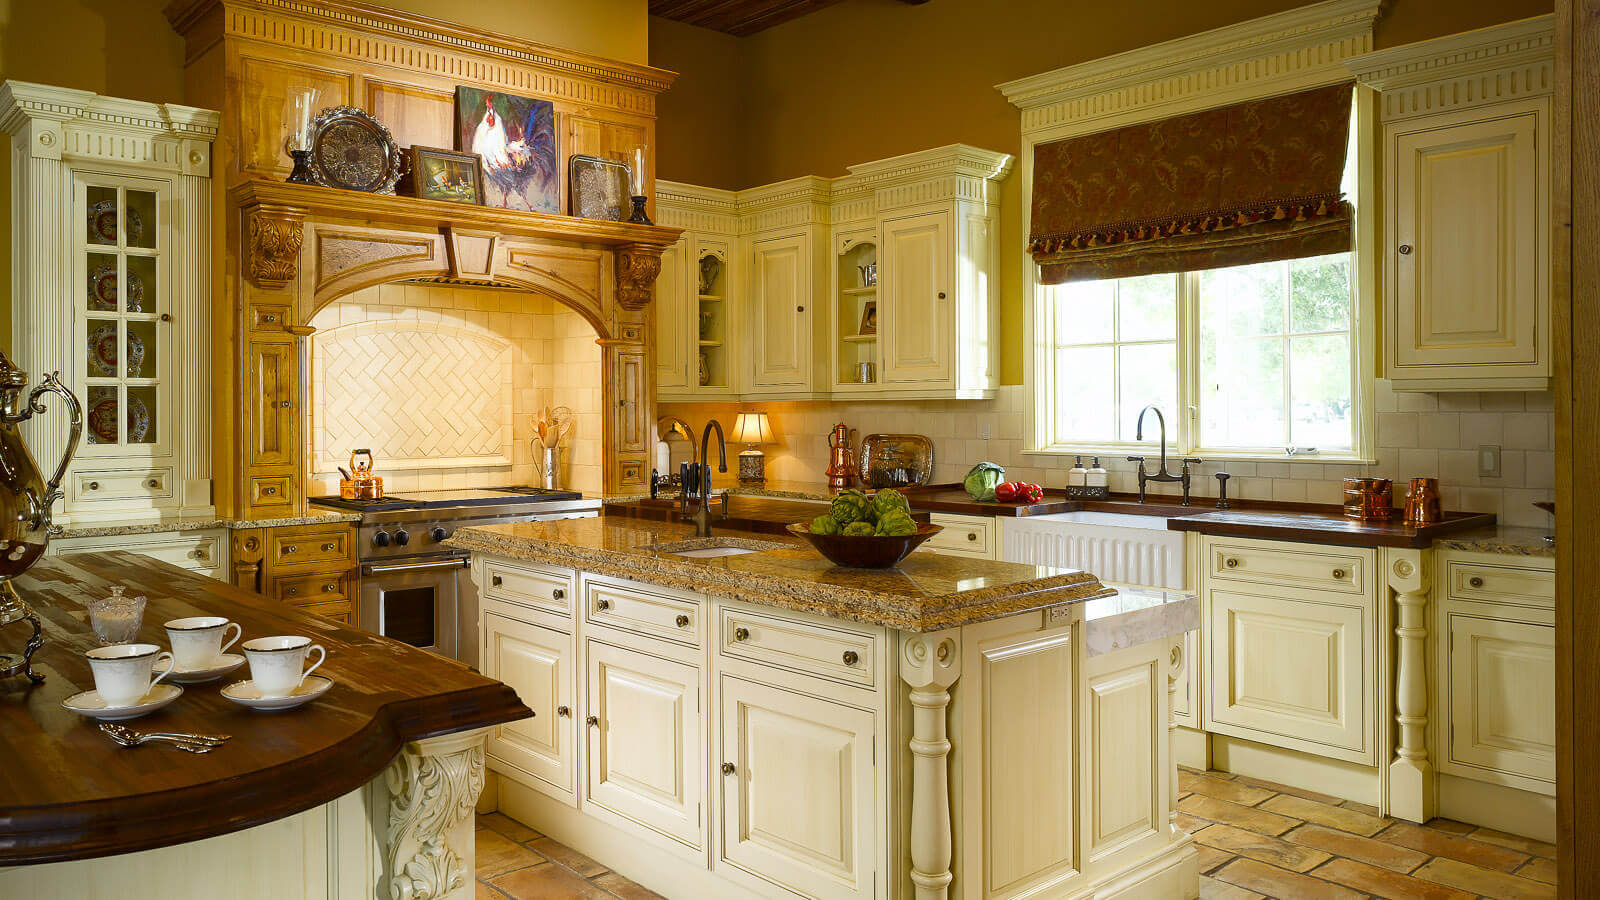 luxury kitchen cabinets. Luxury Kitchen Cabinets  Dominated by white shades this stylish kitchen is composed of a few freestanding counters and Top 65 Design Ideas Exclusive Gallery Home